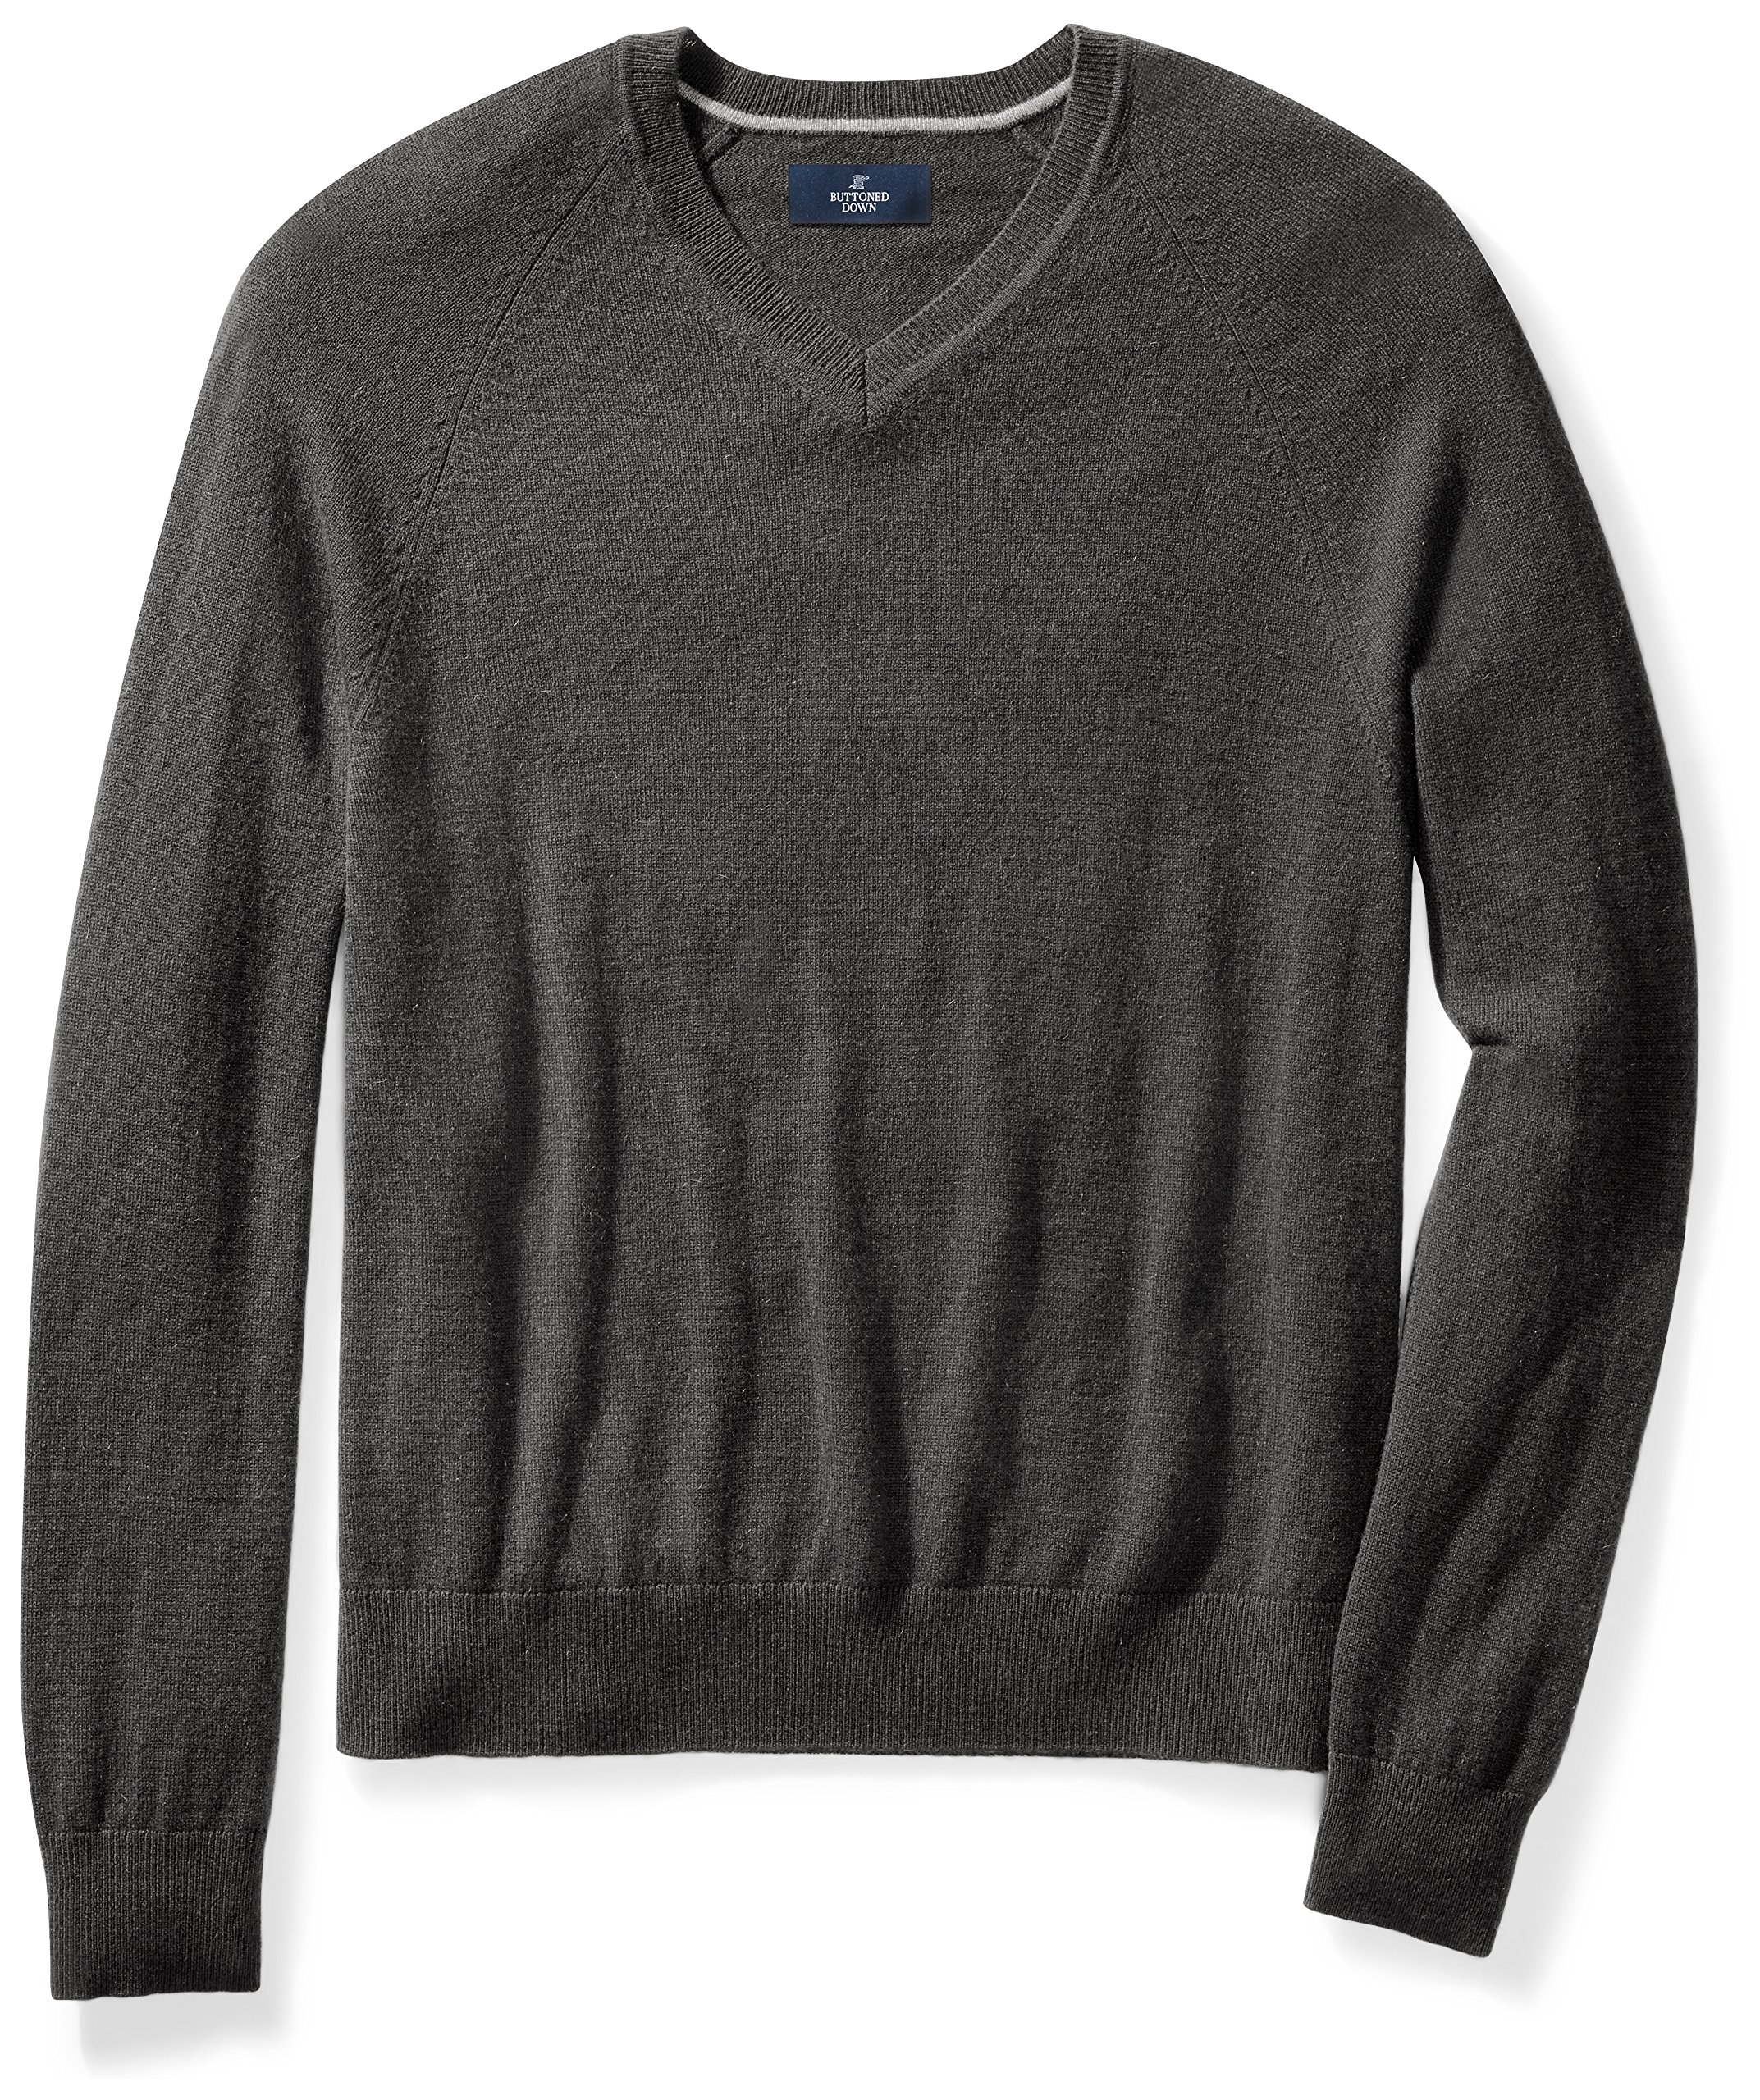 Buttoned Down Men's Cashmere V-Neck Sweater, Dark Grey, X-Large